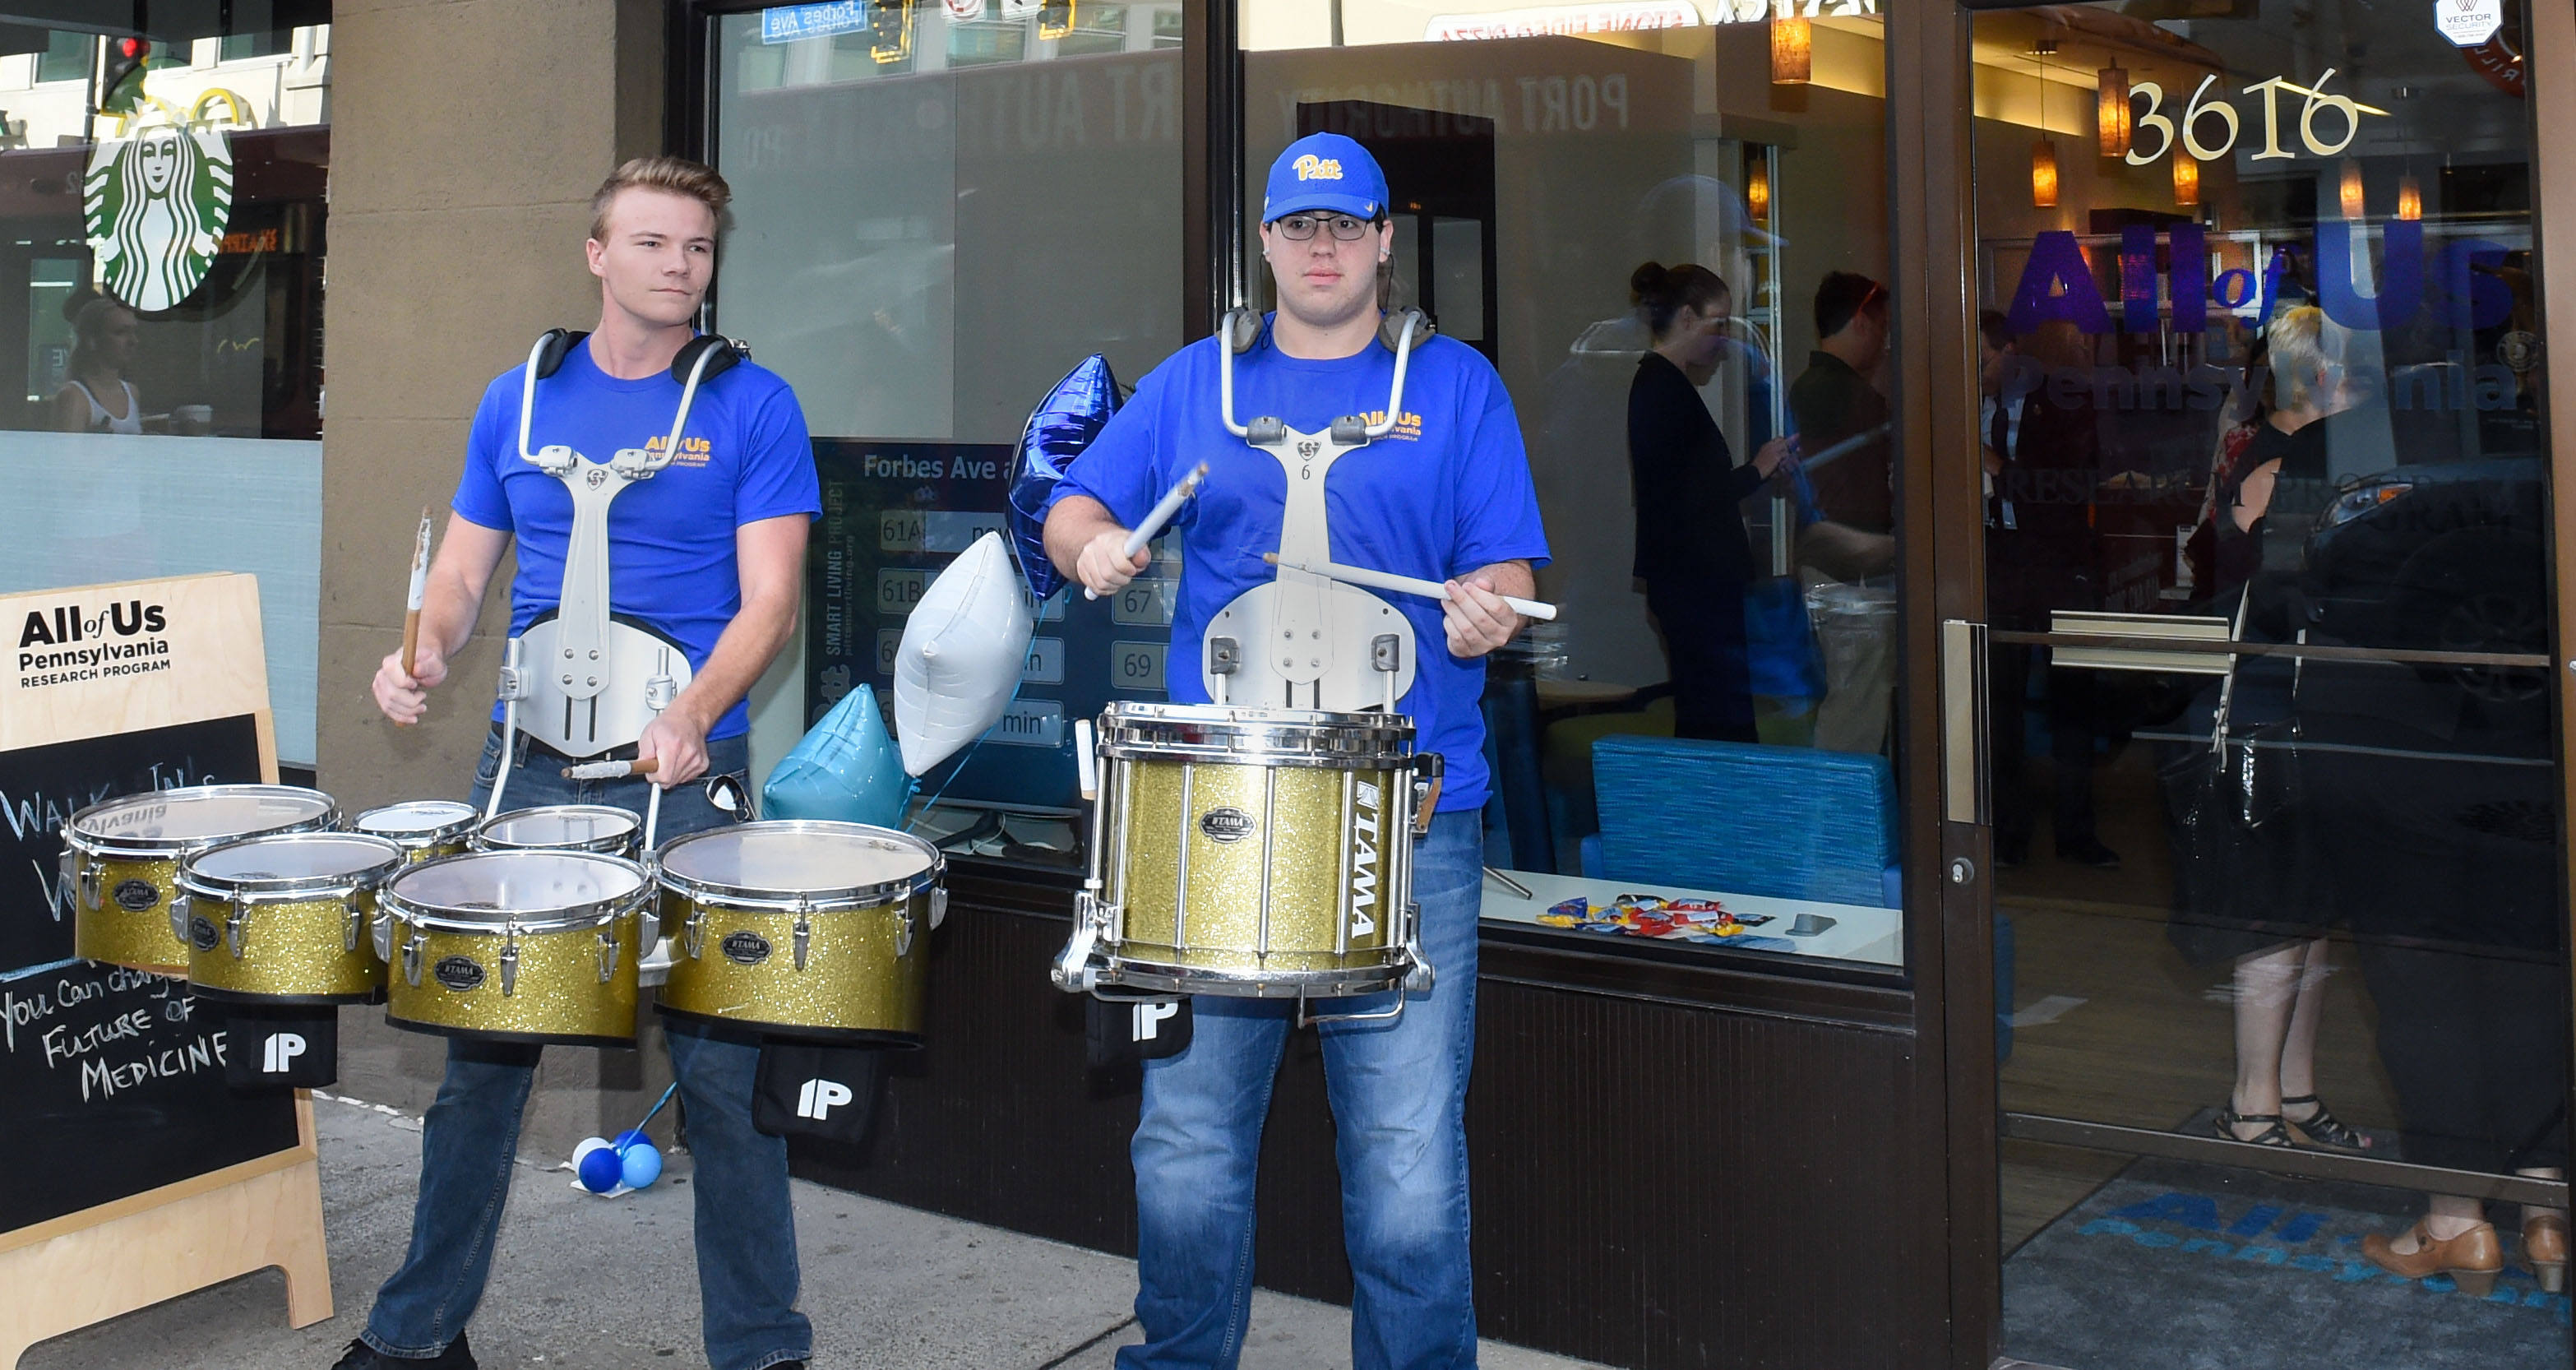 Drummers outside office